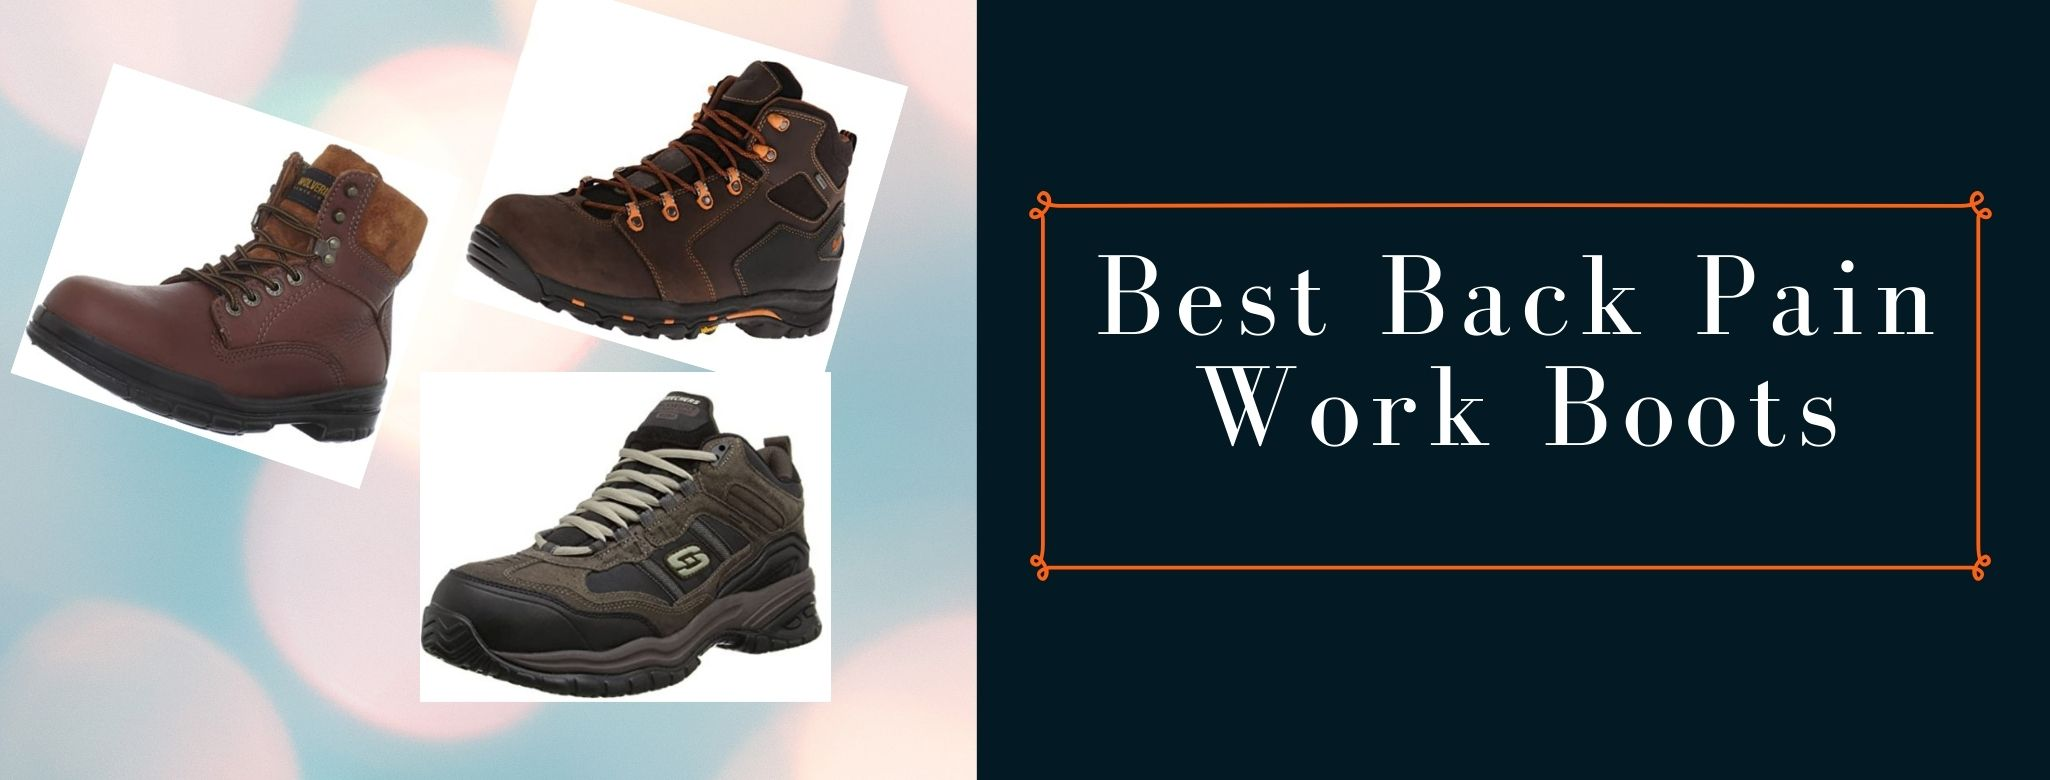 Comfortable boots for back pain